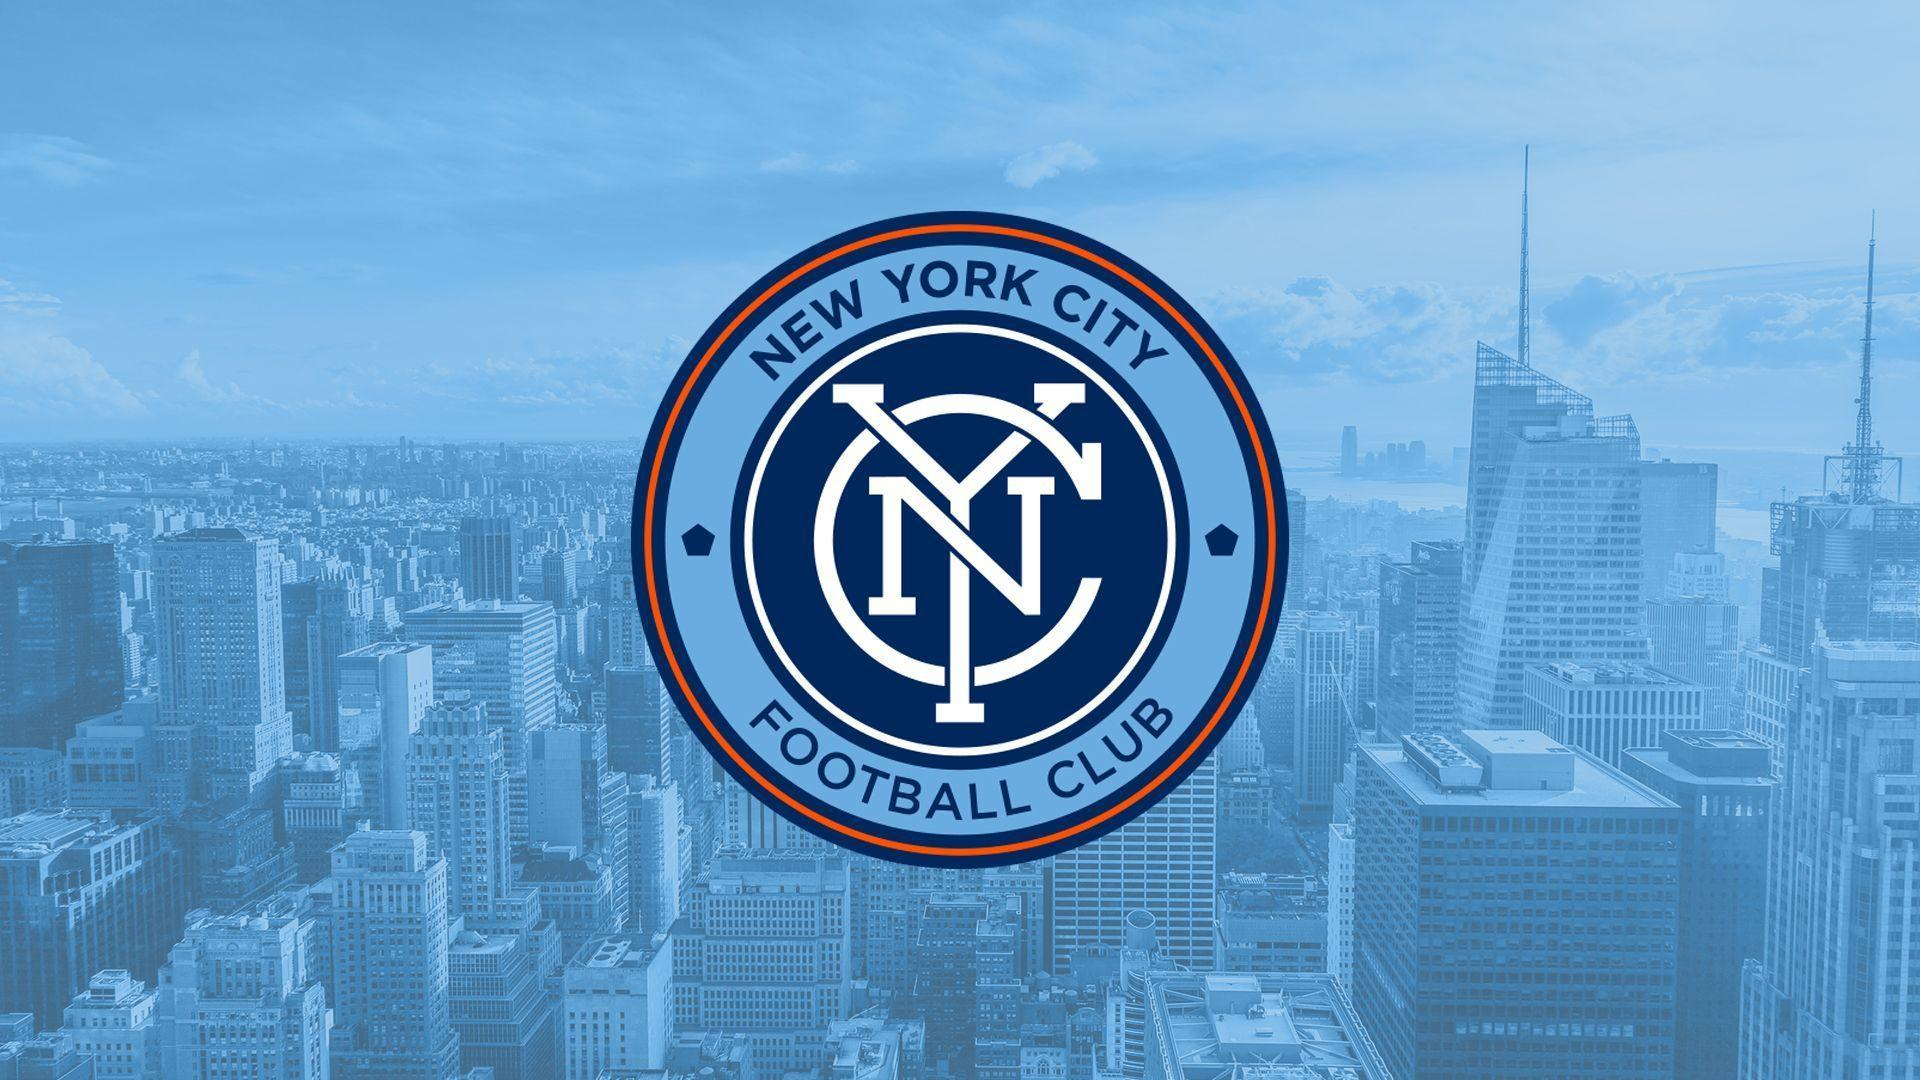 New York City FC Background & Wallpaper | New York City FC